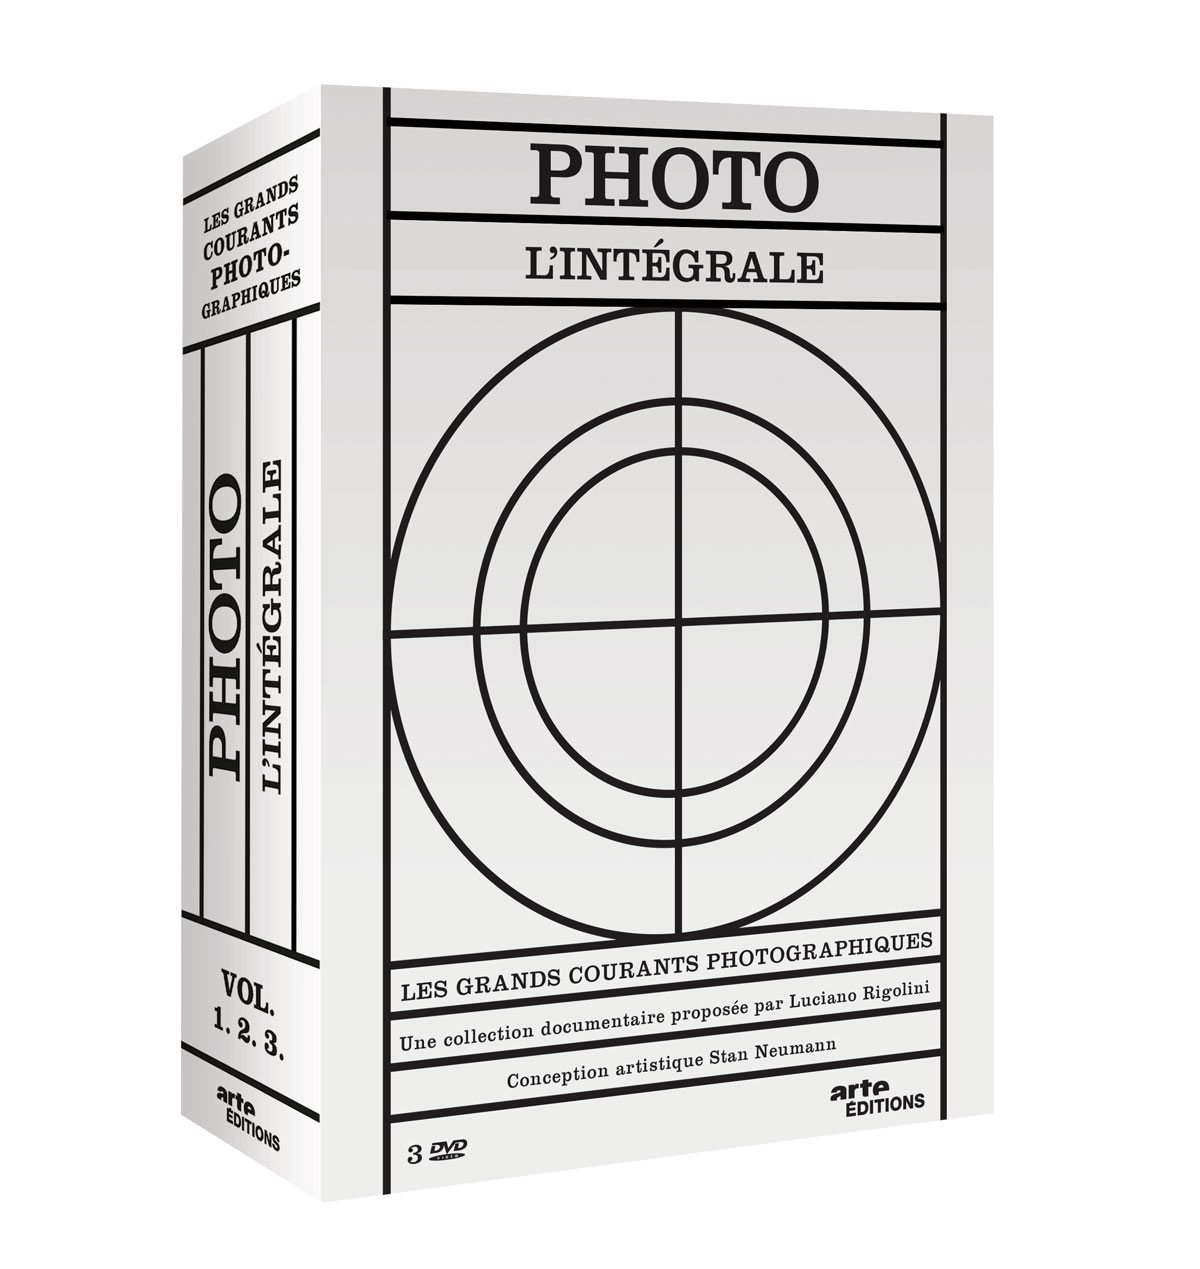 coffret integrale photo d'arte